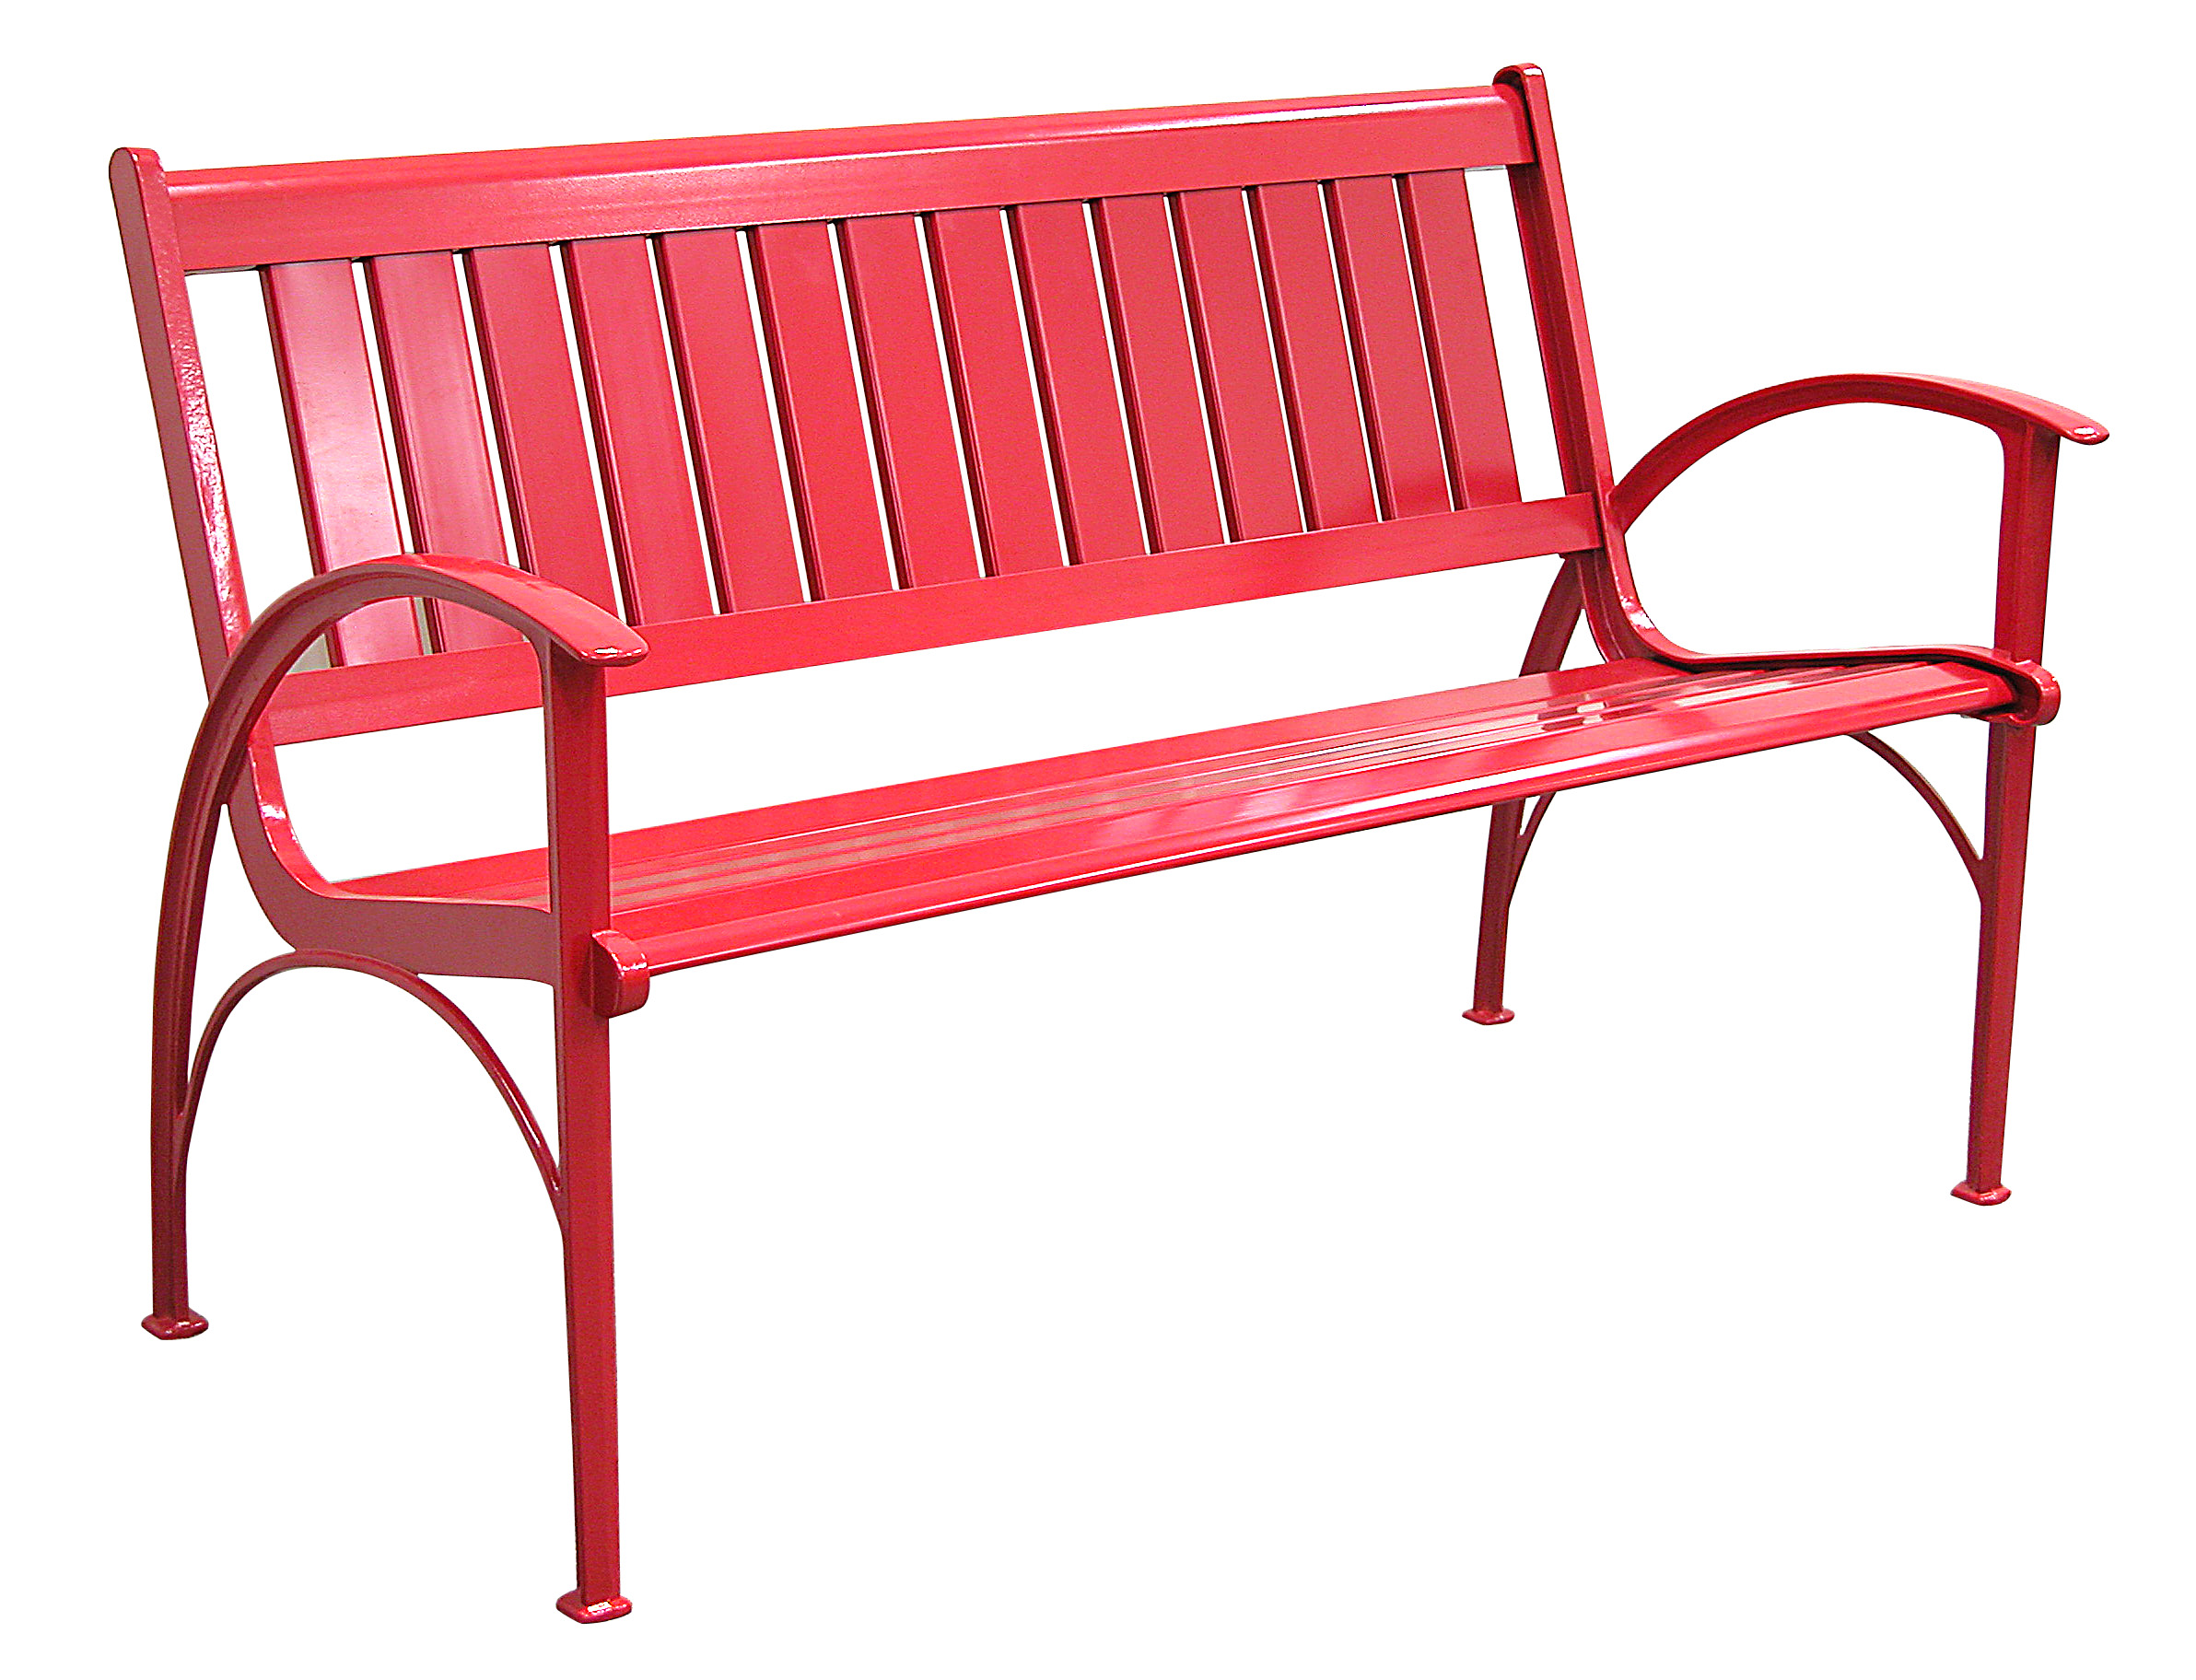 Patio Furniture Bench Contemporary Cast Aluminum Red